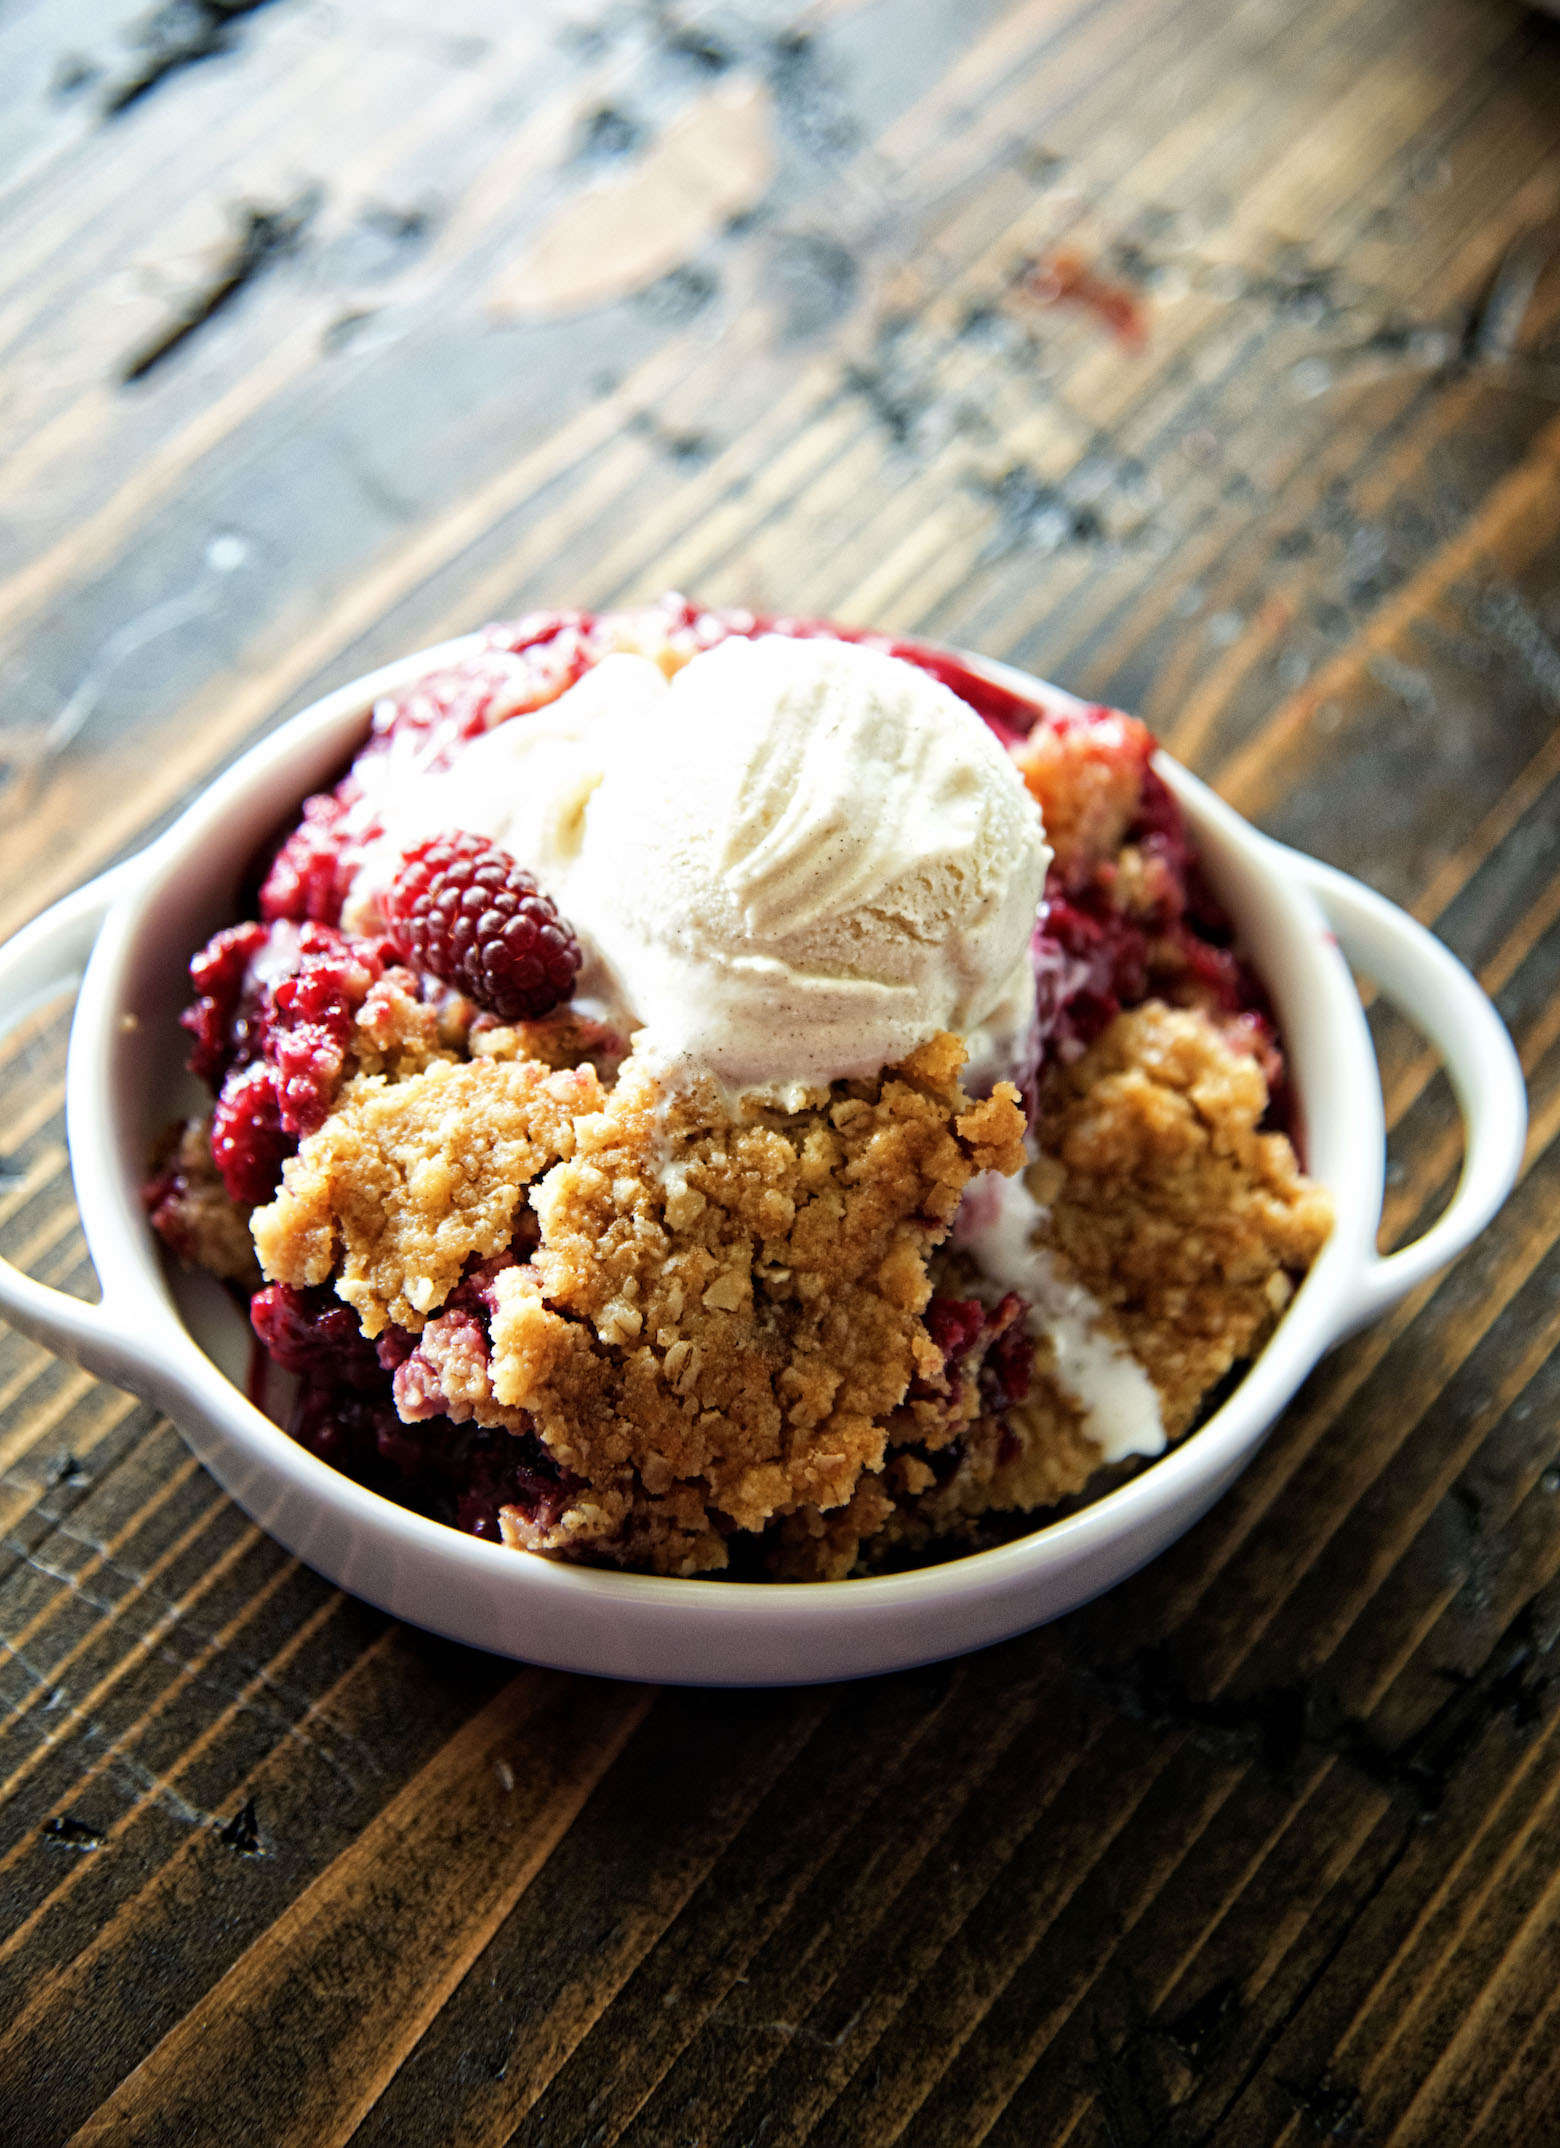 Mixed Berry Oatmeal Cookie Cobbler